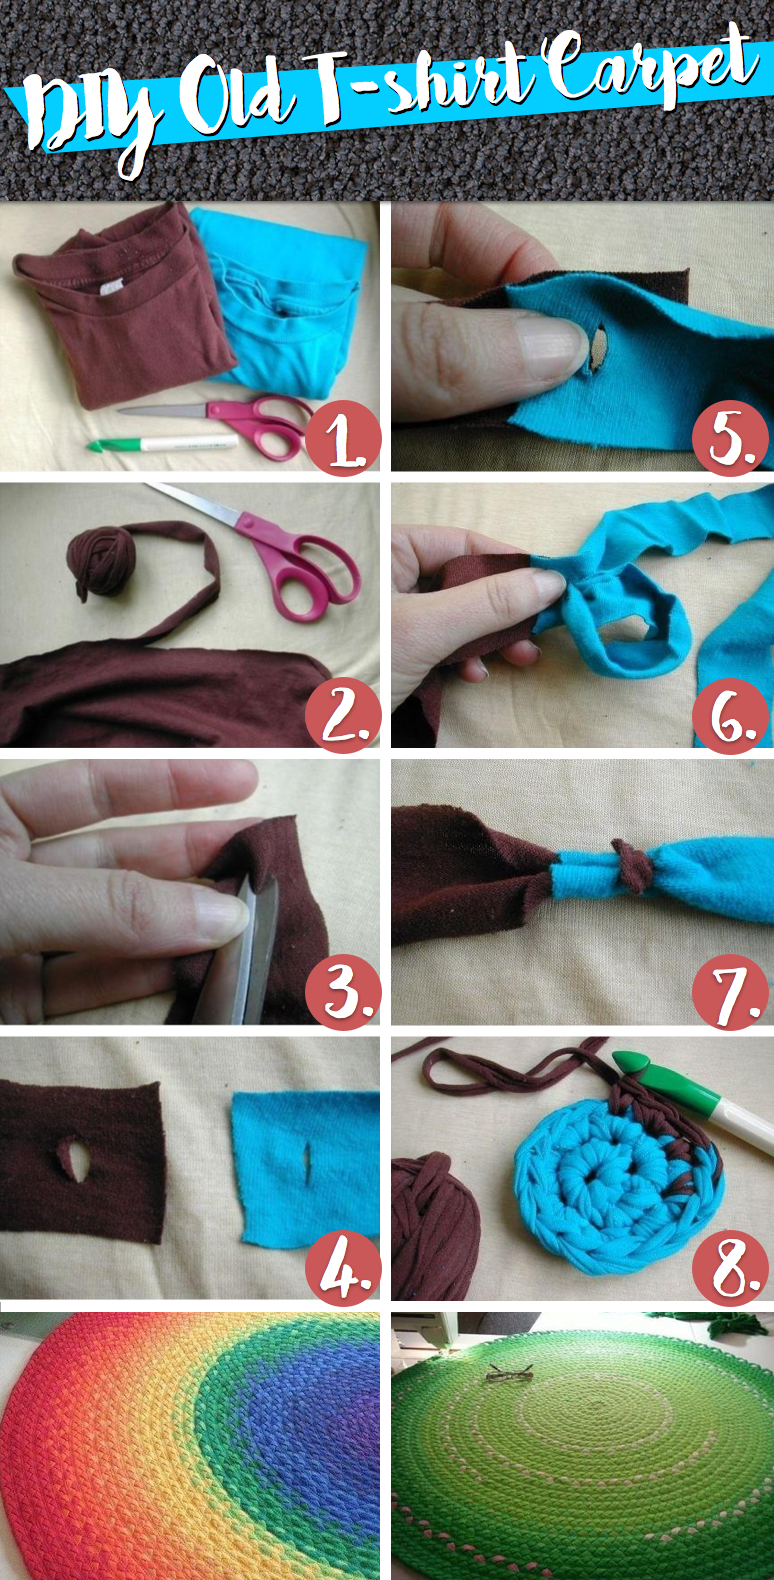 Put Those Old Tees To Wonderful Use With This Diy Old T